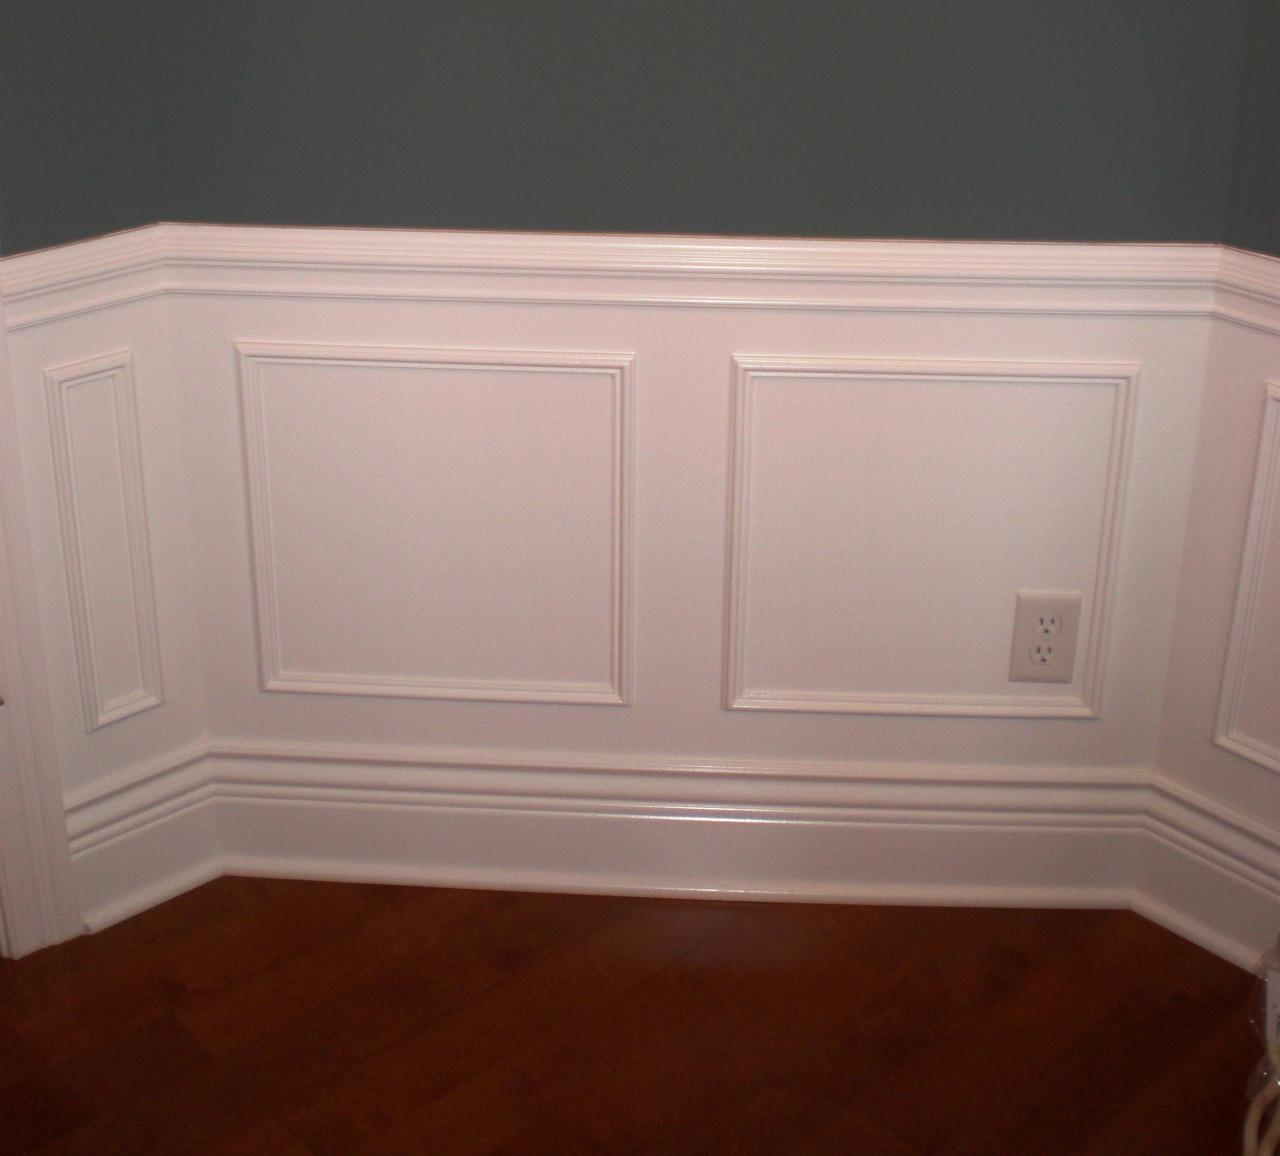 Chair Rail Molding Ideas HomesFeed : large chair rail molds in white with an electric port hardwood floors from homesfeed.com size 1280 x 1156 jpeg 88kB